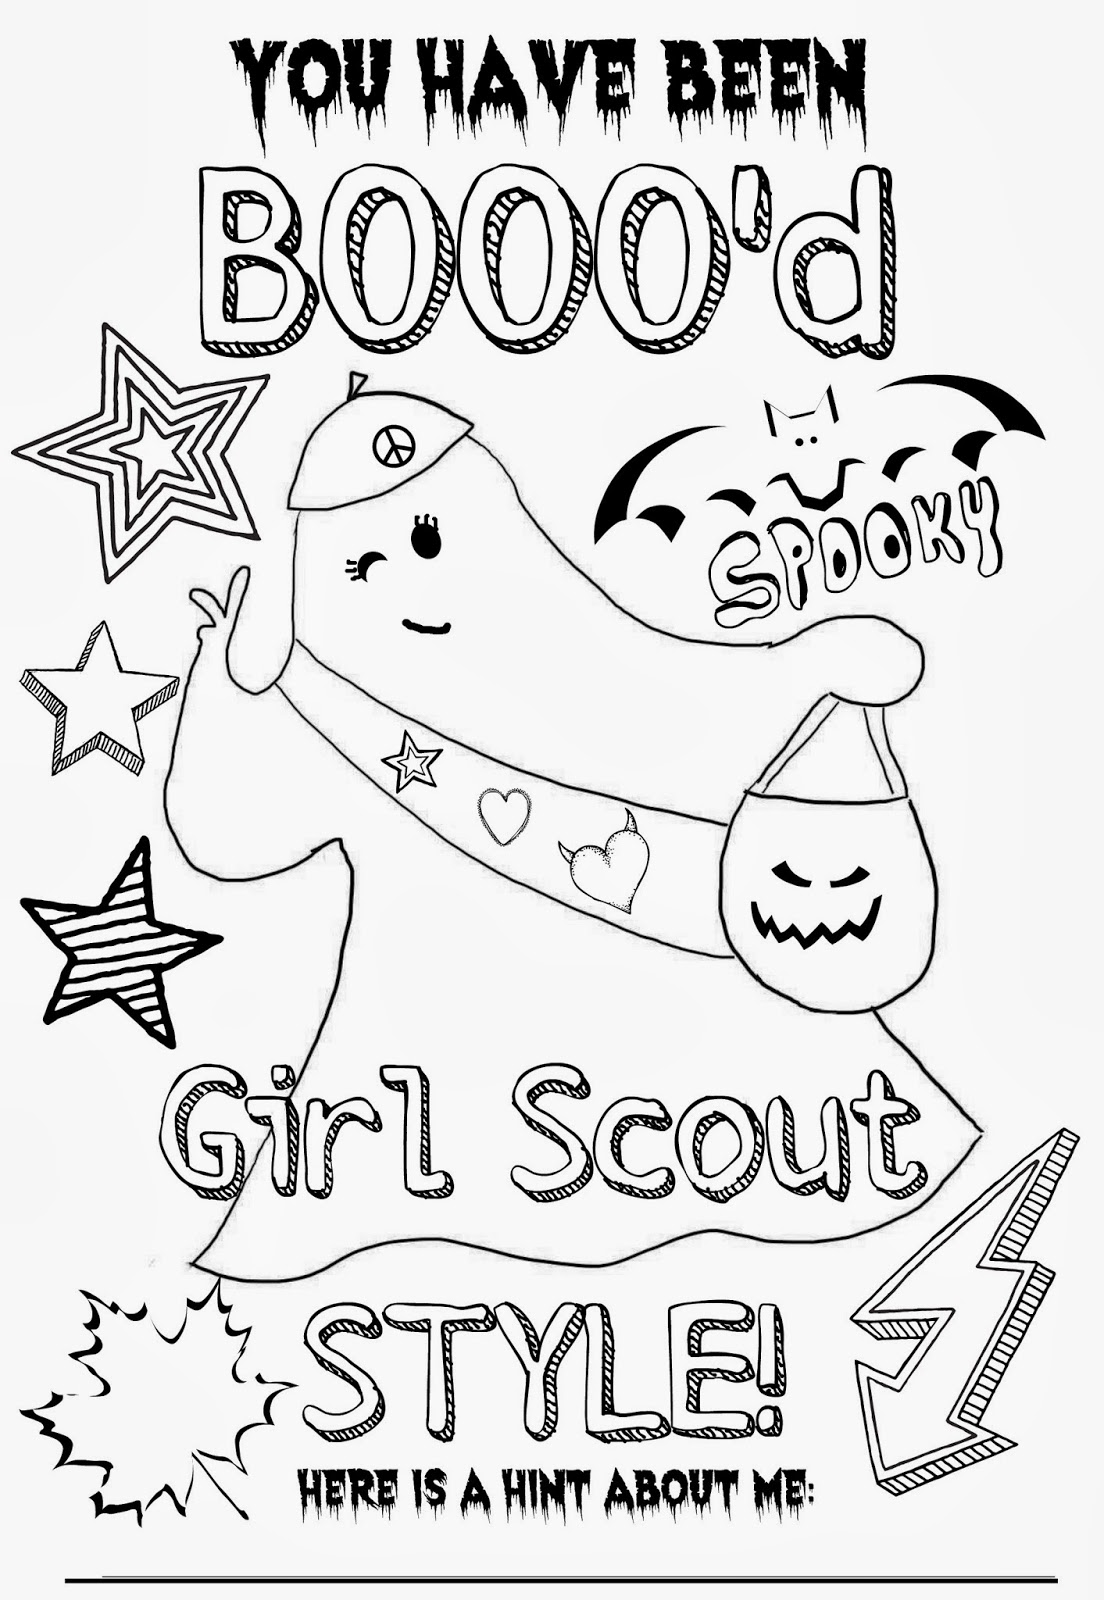 1000 images about girl scout on pinterest girl scouts for Girl scout coloring pages for daisies